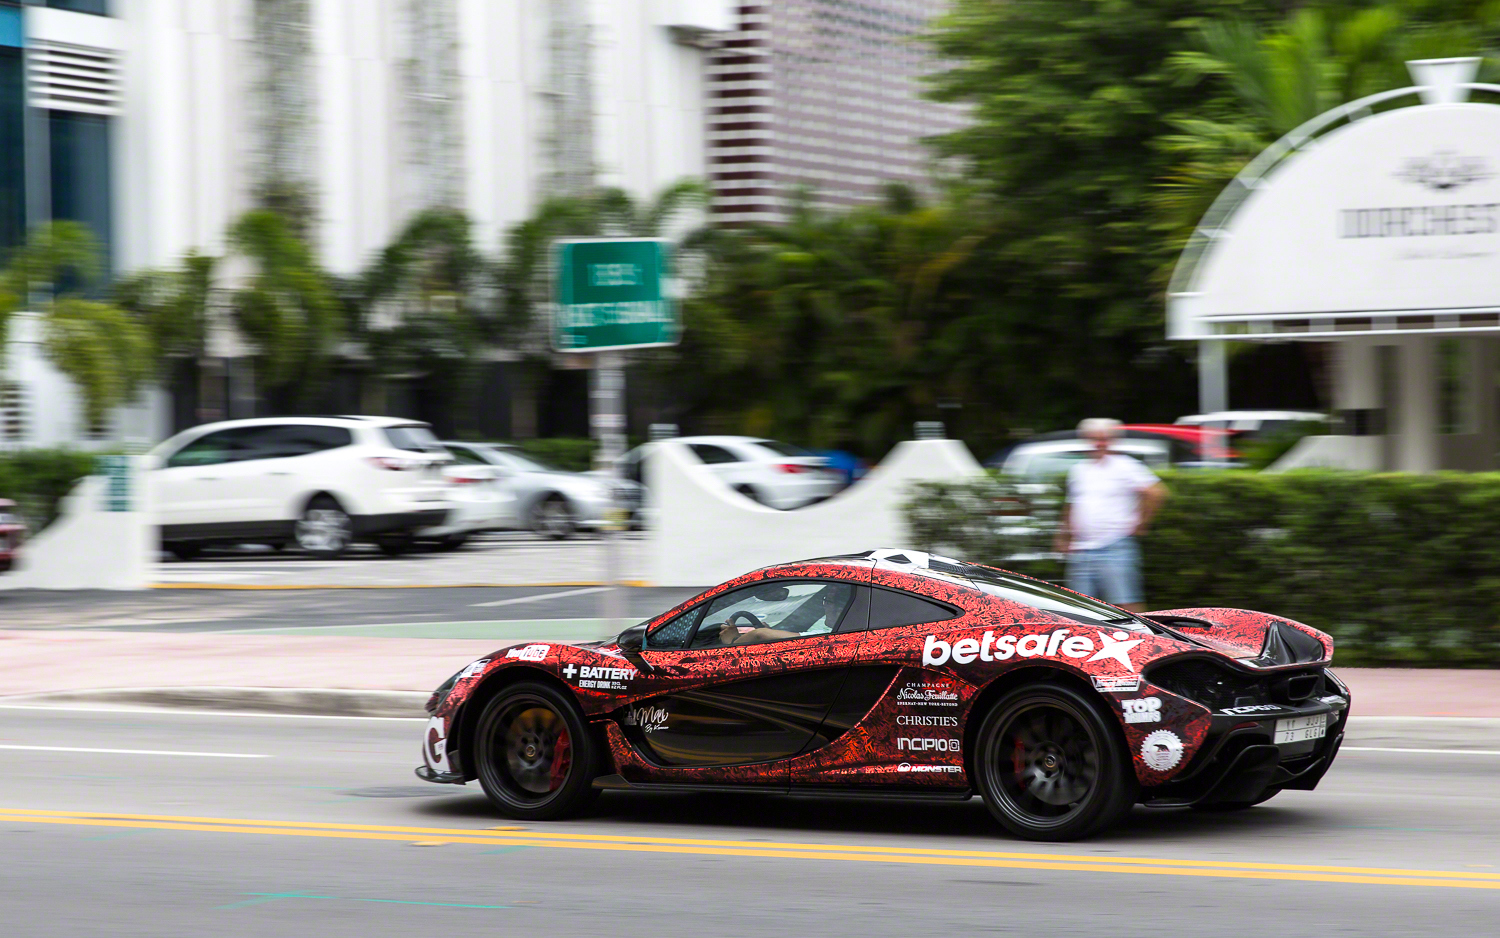 SMoores_14-06-04_Gumball3000-Miami_0131-Edit.jpg